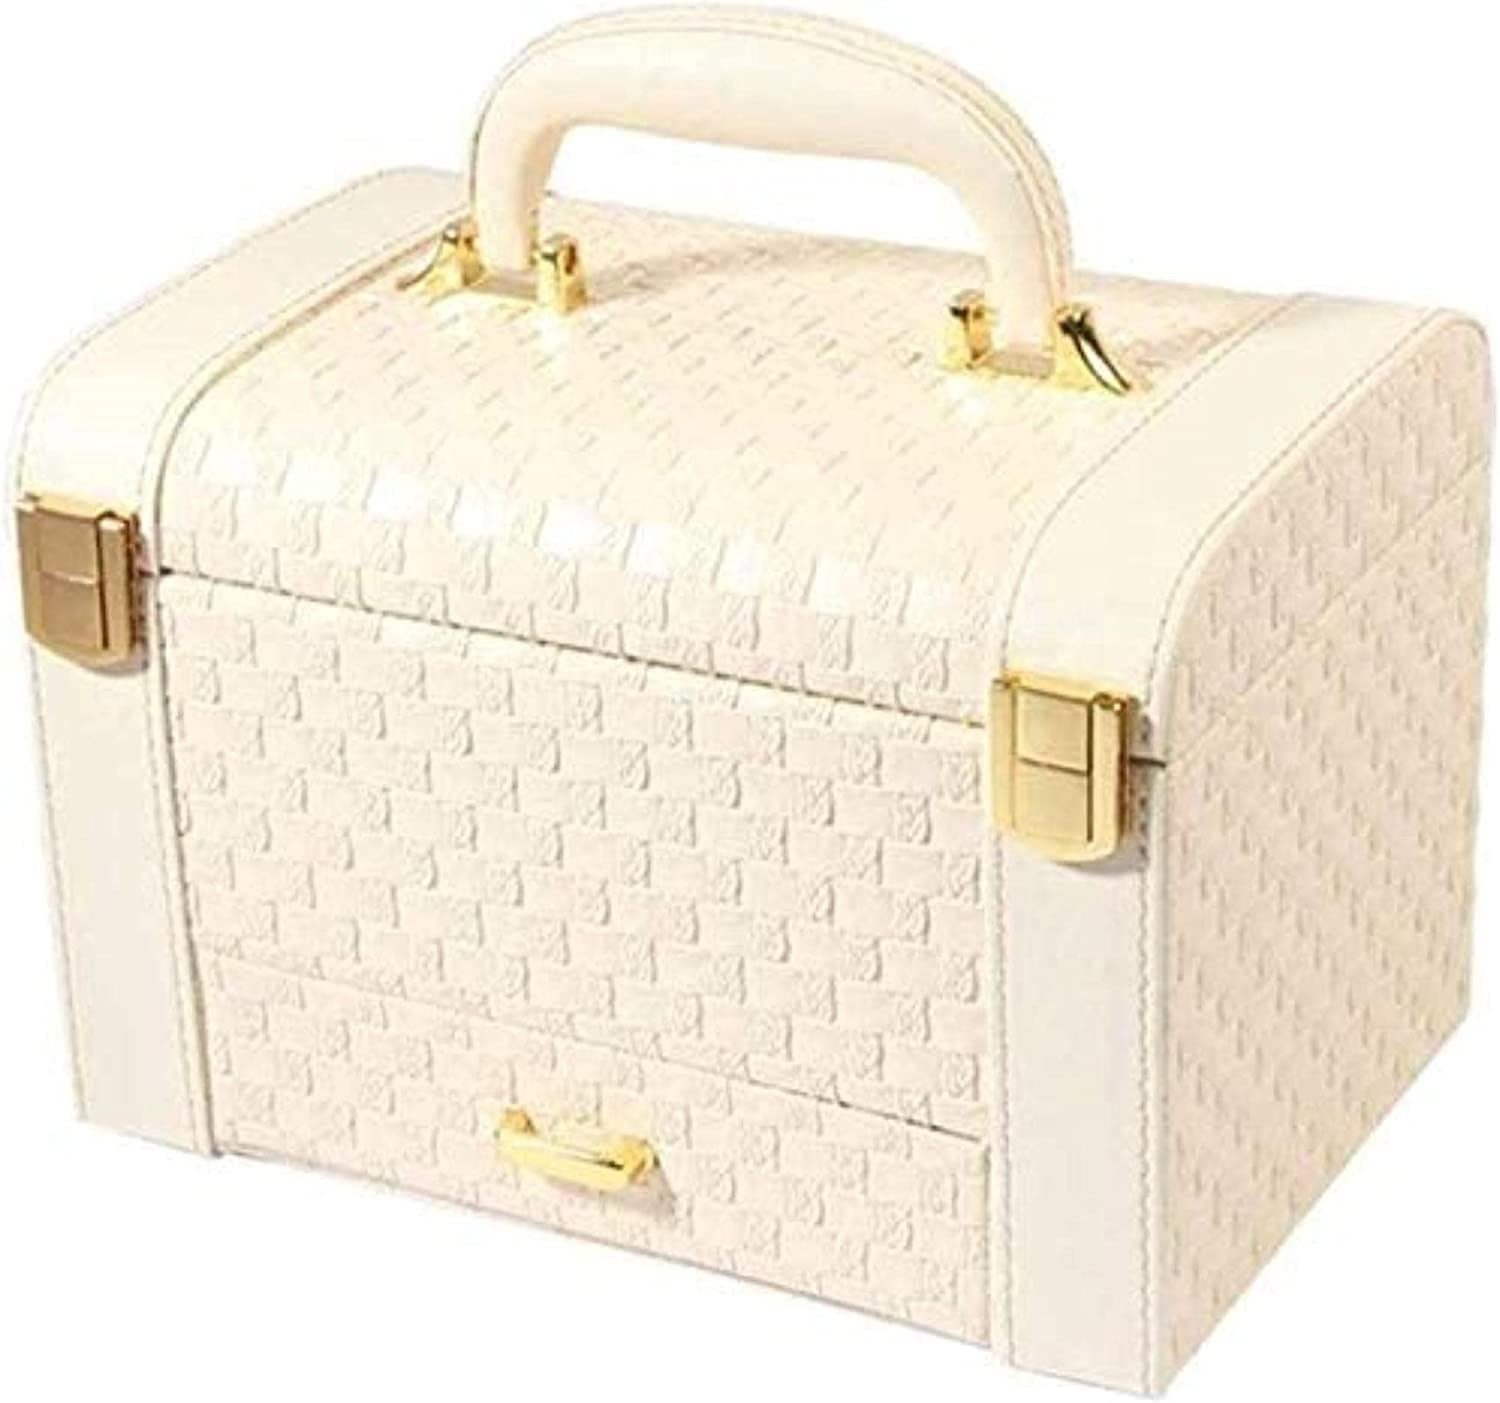 ZXCVBNN Large Capacity Max 48% OFF Jewellery Now free shipping Jeweller Leather Boxes Portable